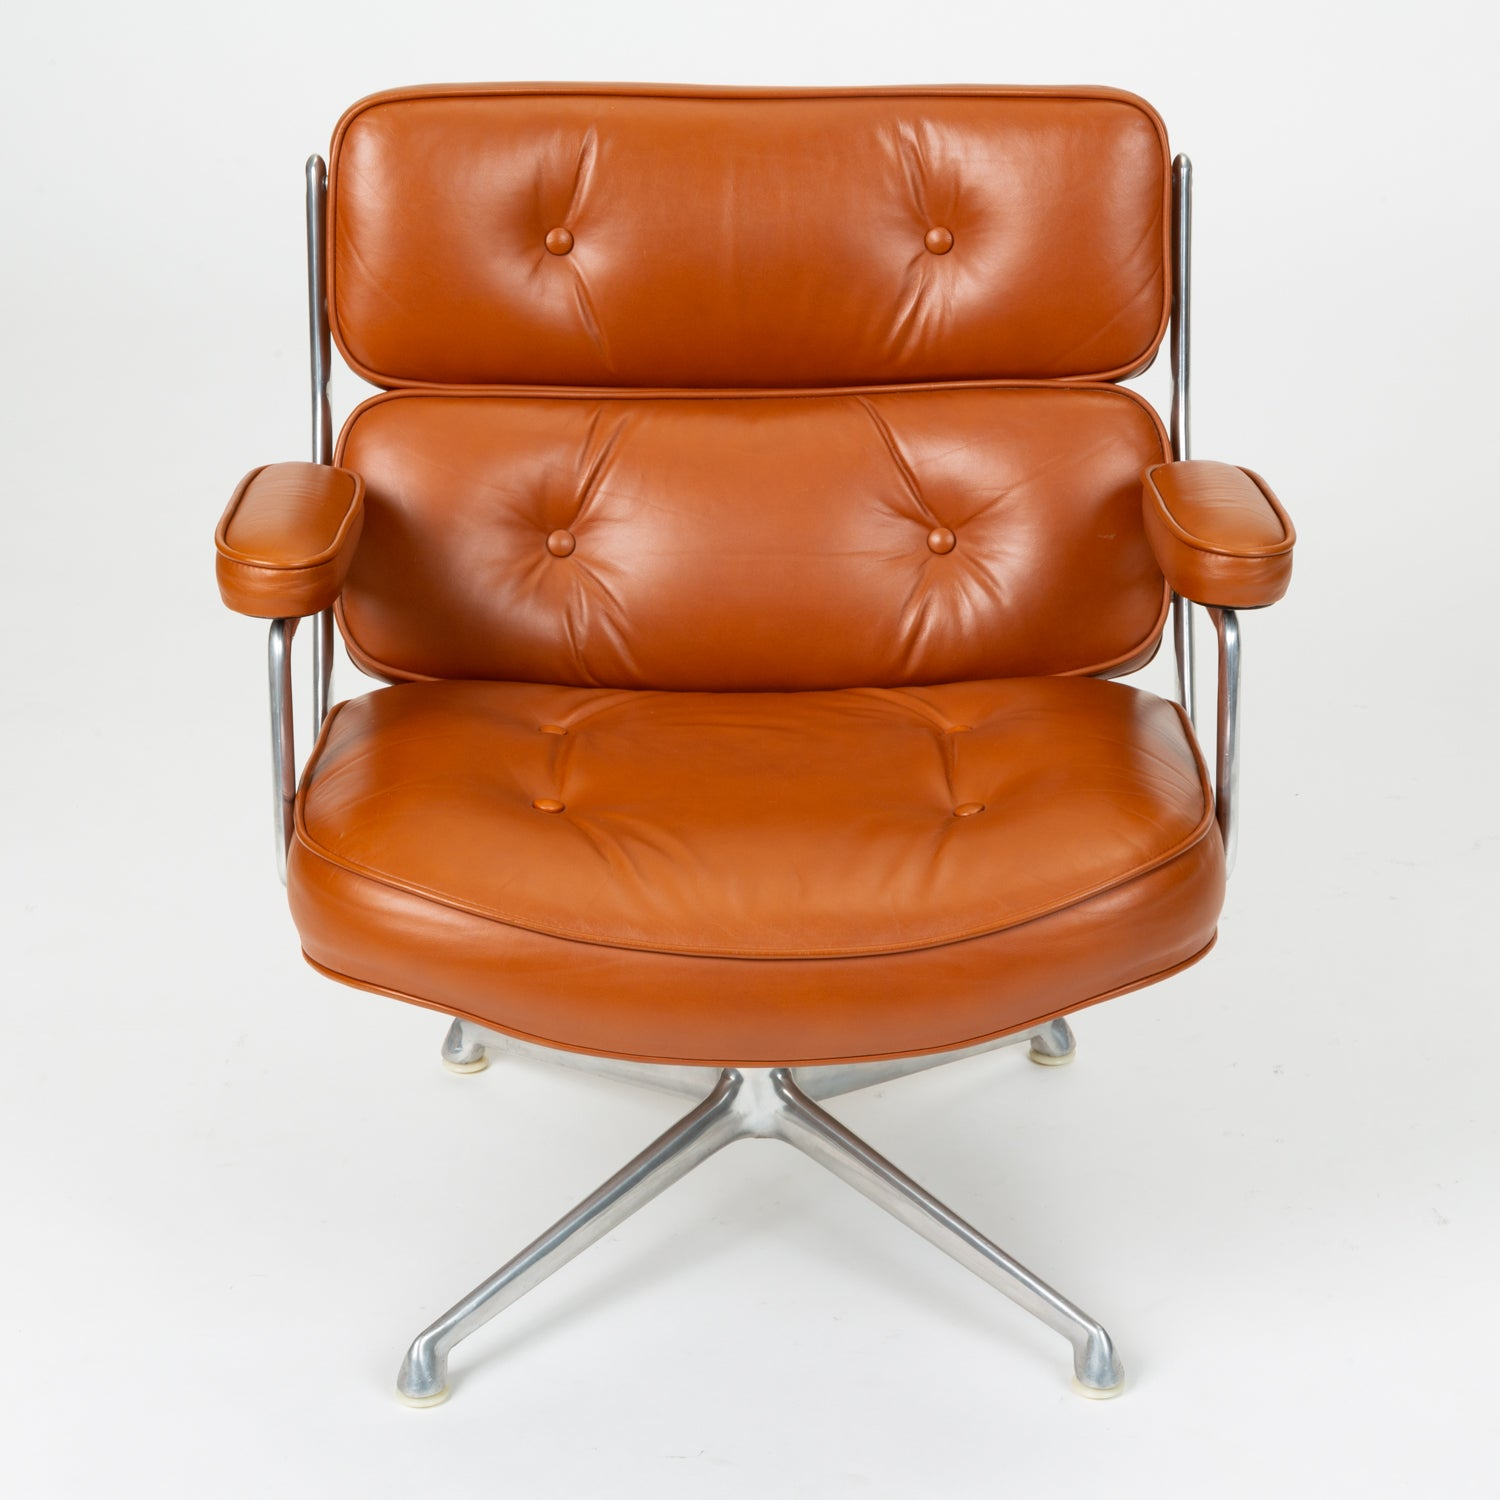 Ray + Charles Eames Time Life Lobby Chair in Cognac Leather